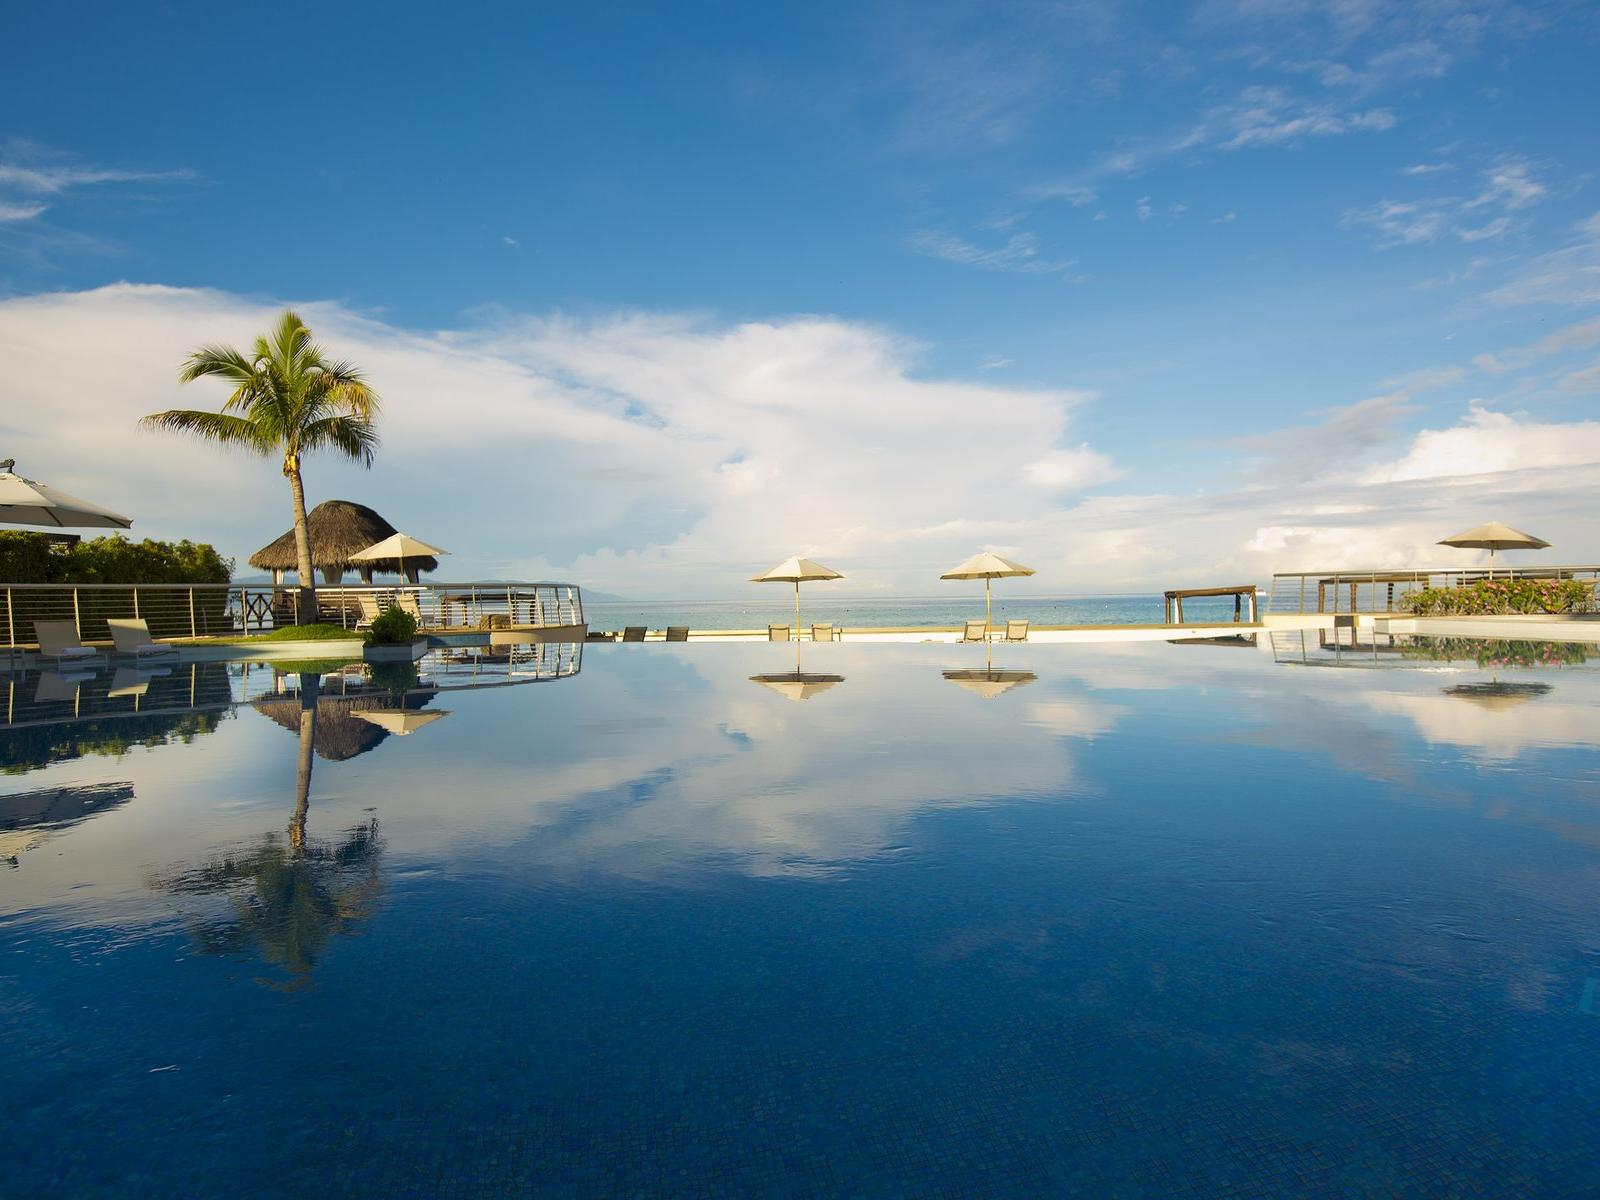 Infinity Pool with Beach in the Background